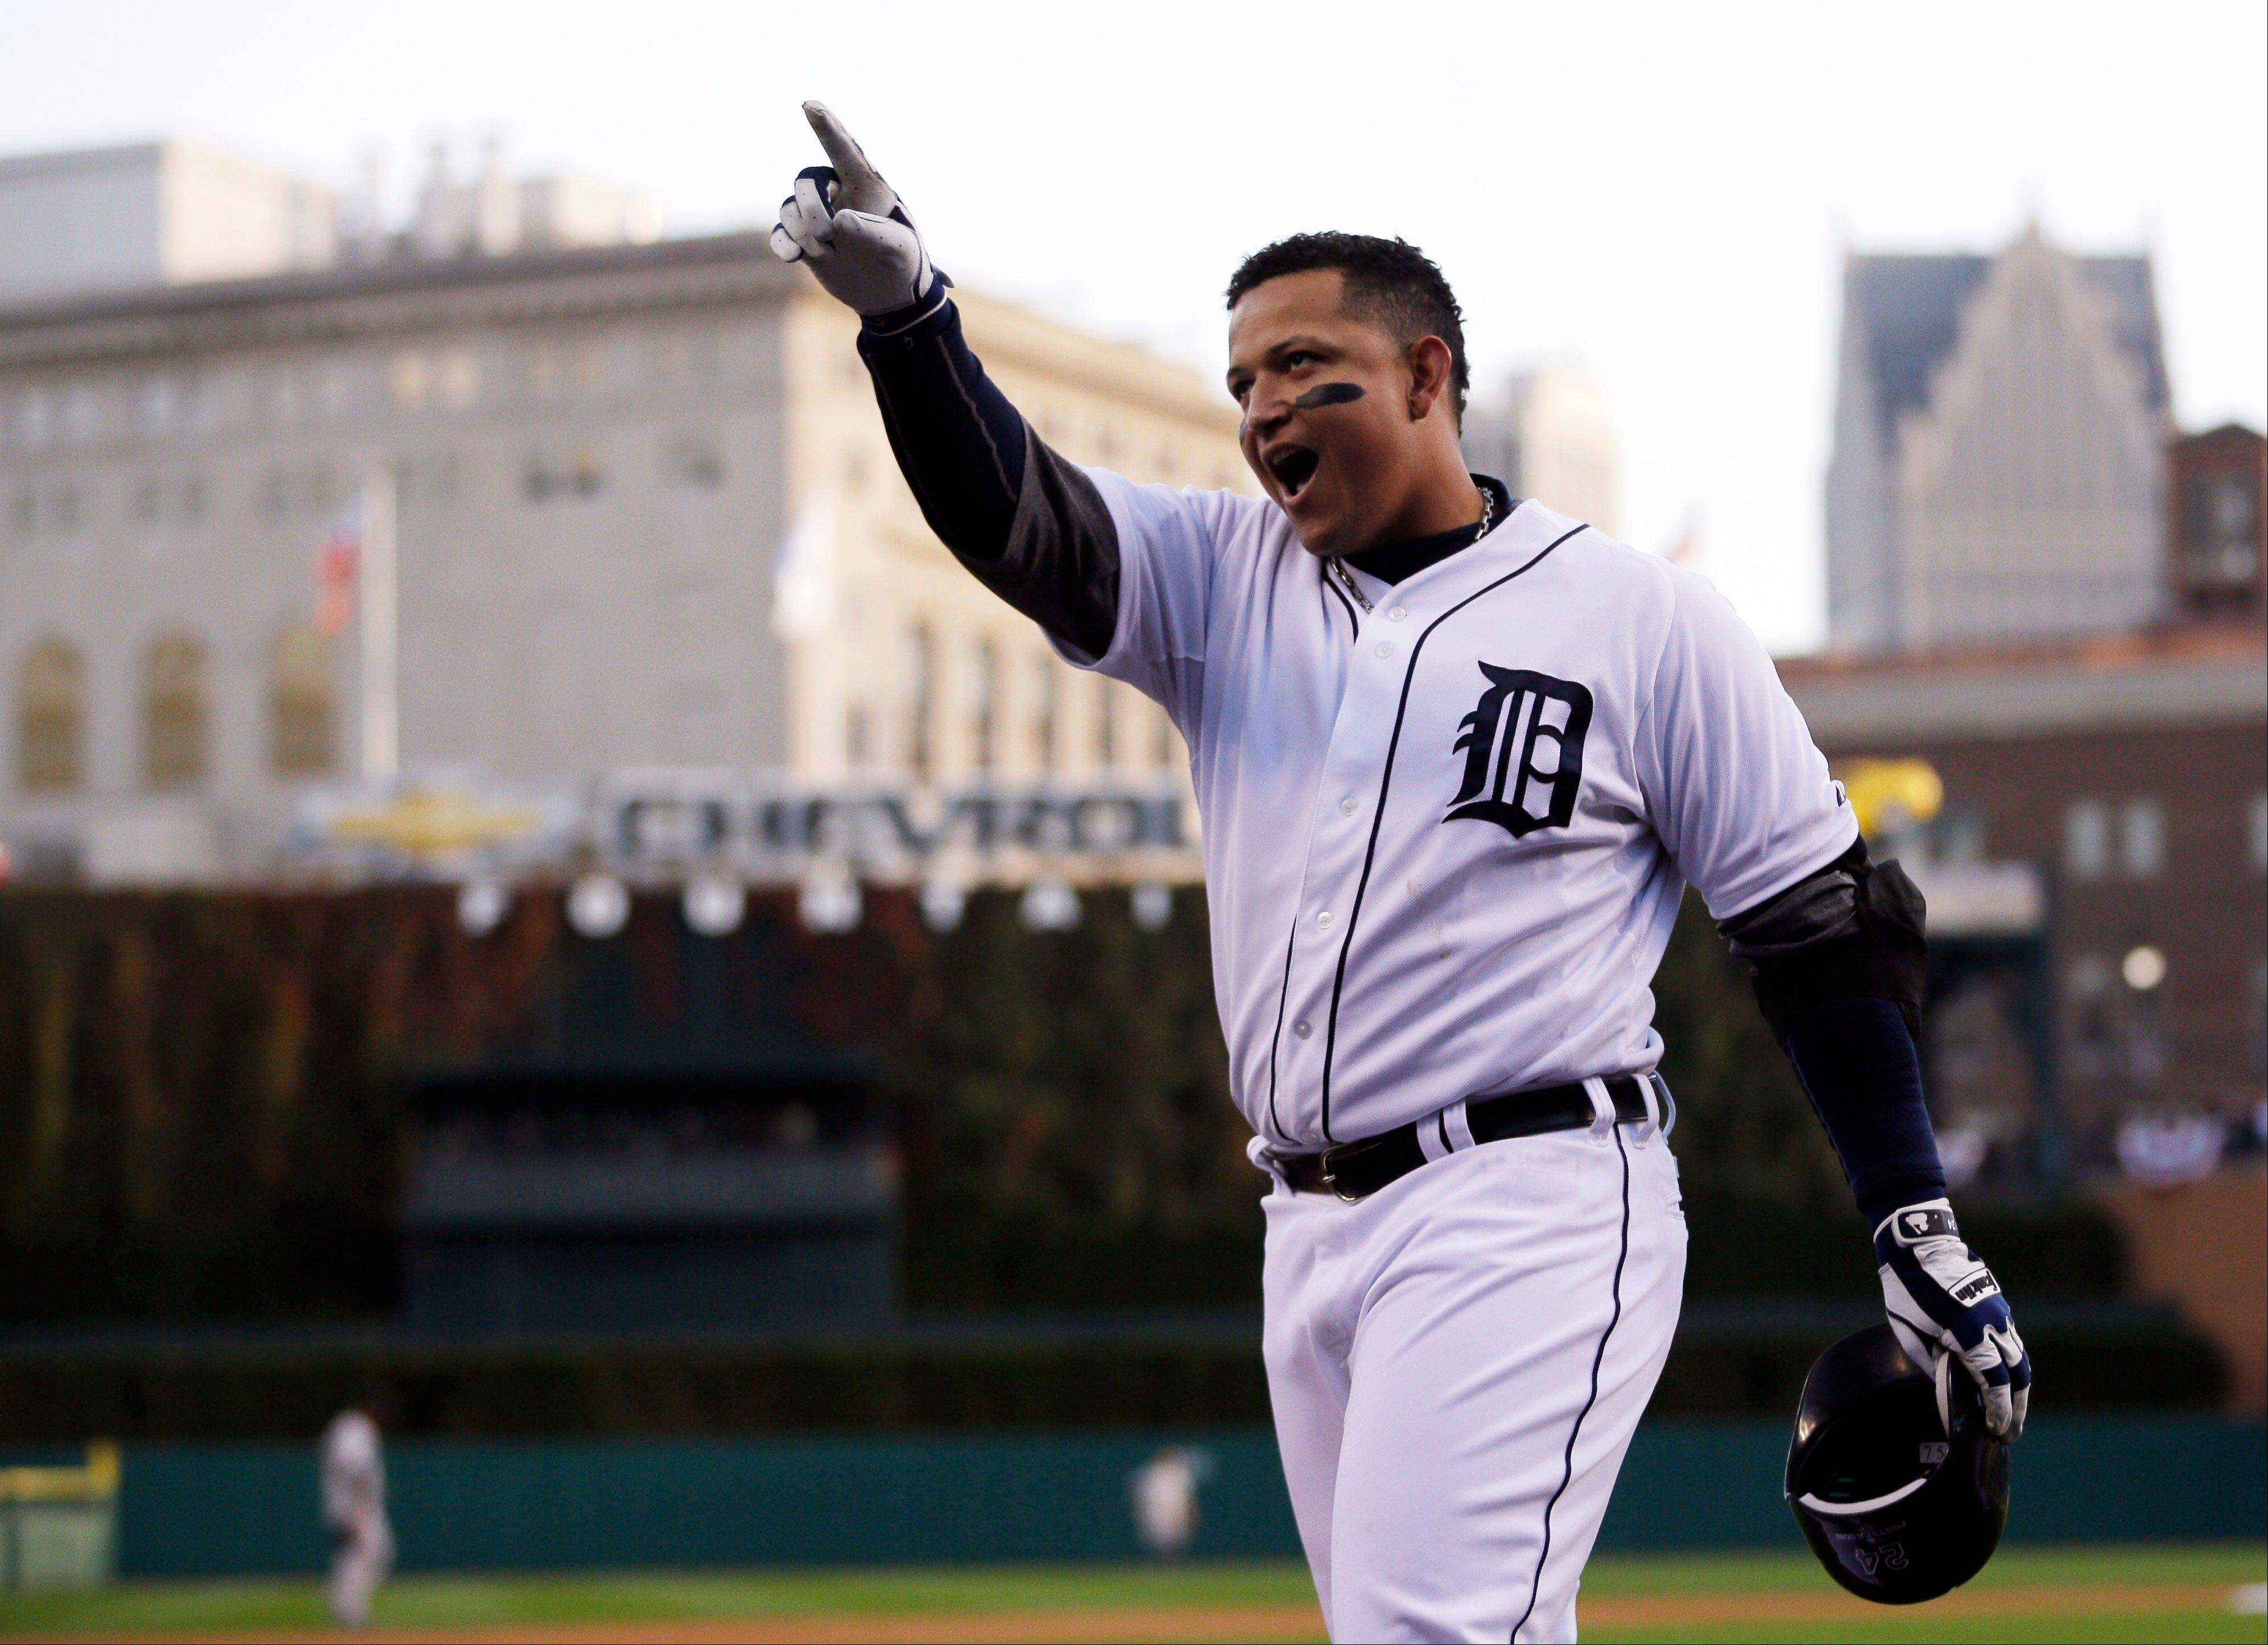 Detroit Tigers� Miguel Cabrera celebrates after hitting a two-run home run in the fourth inning during Game 4 of the American League championship series against the New York Yankees Thursday, Oct. 18, 2012, in Detroit.